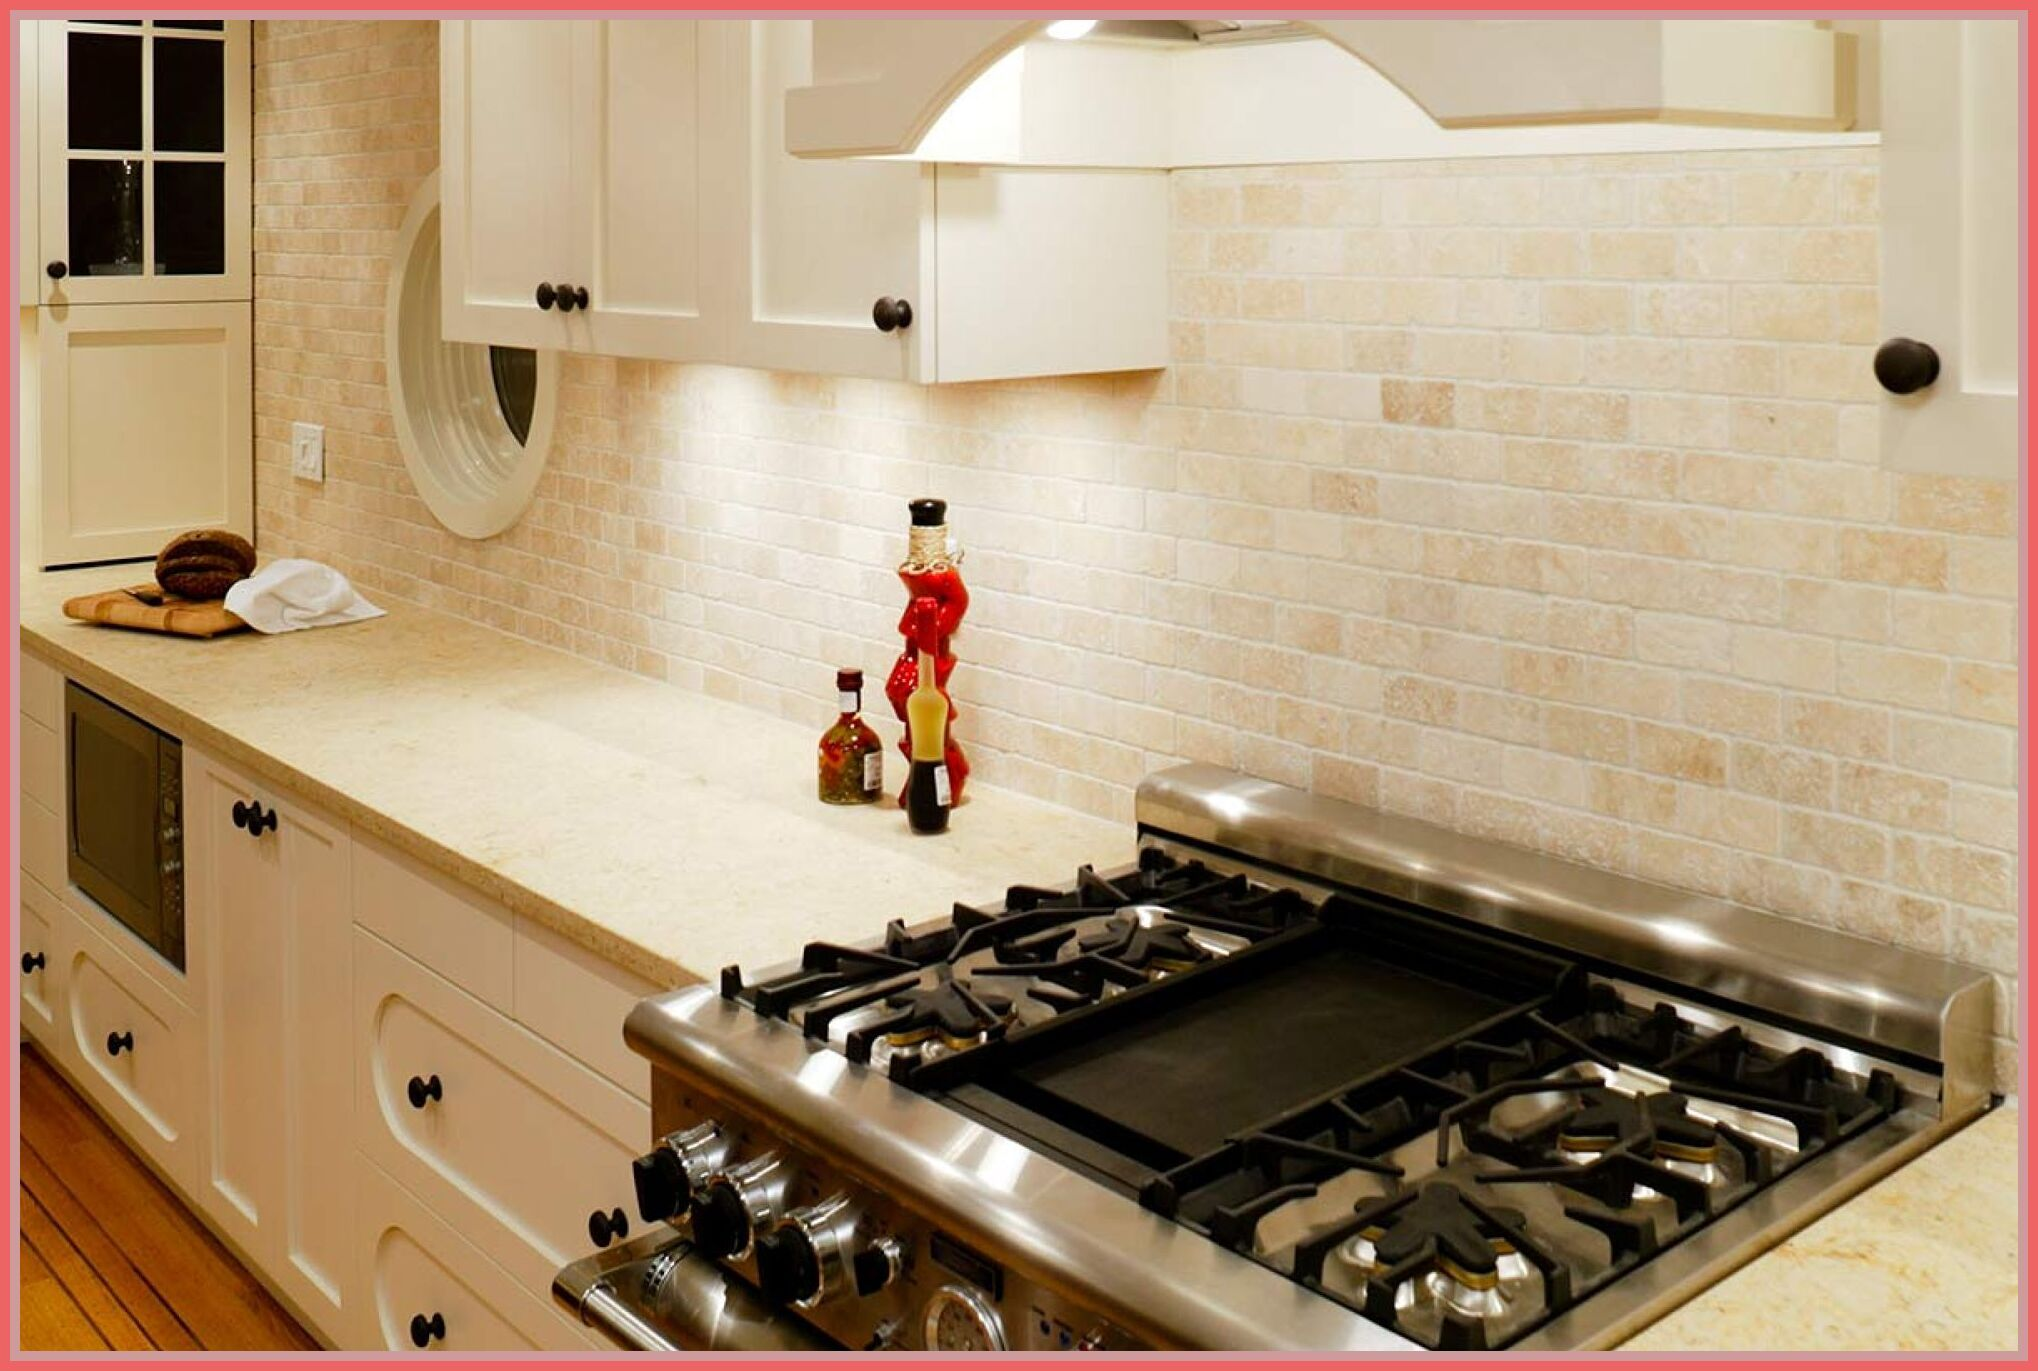 109 Reference Of Granite Countertops Pros And Cons In 2020 Engineered Stone Countertops Corian Kitchen Countertops Kitchen Countertops Prices